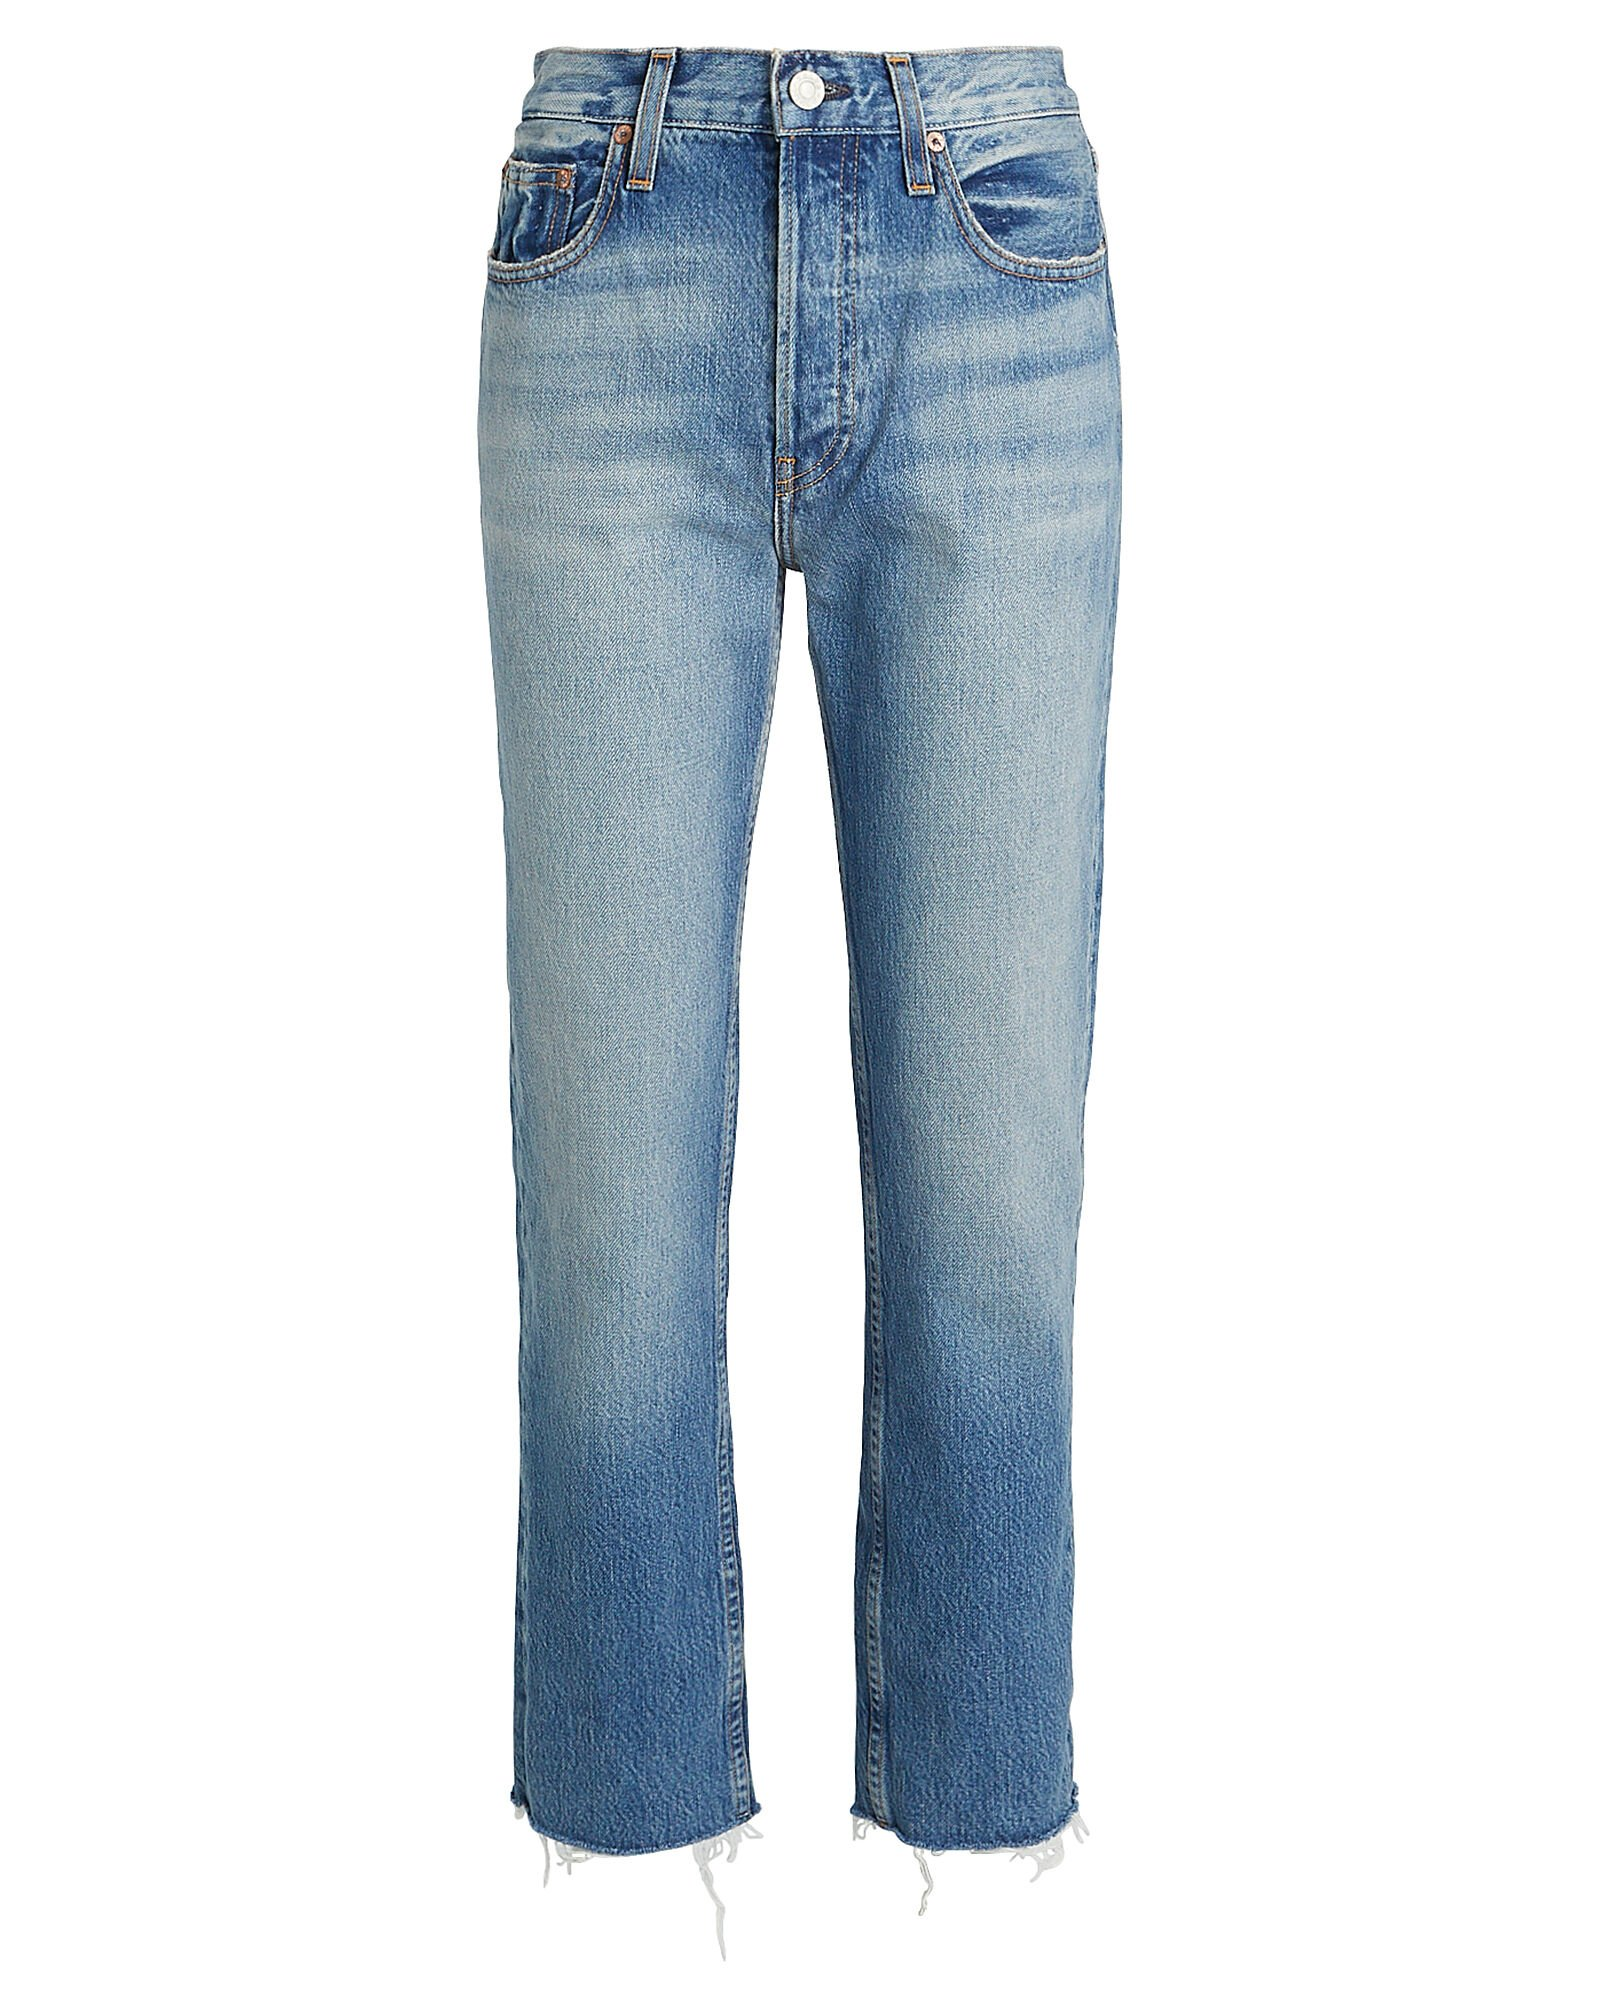 Constance Tapered High-Rise Jeans, DENIM, hi-res